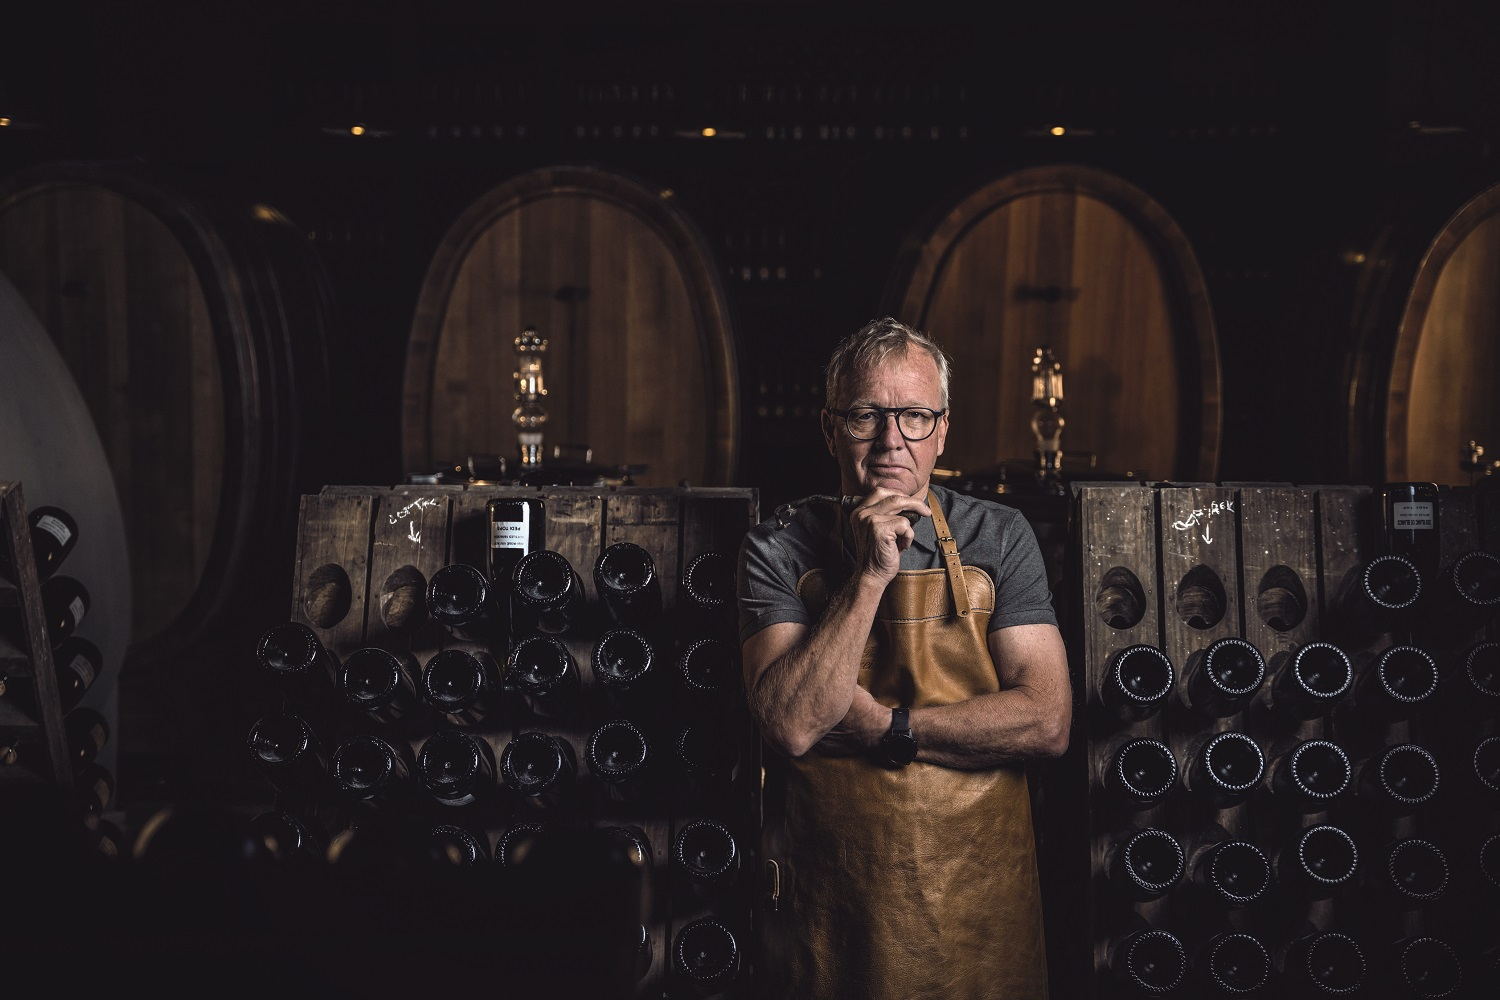 Known as Mr Bubbles for his way with sparkling wine, cellar master Pieter Ferreira has been capturing the stars in liquid form for close on four decades.